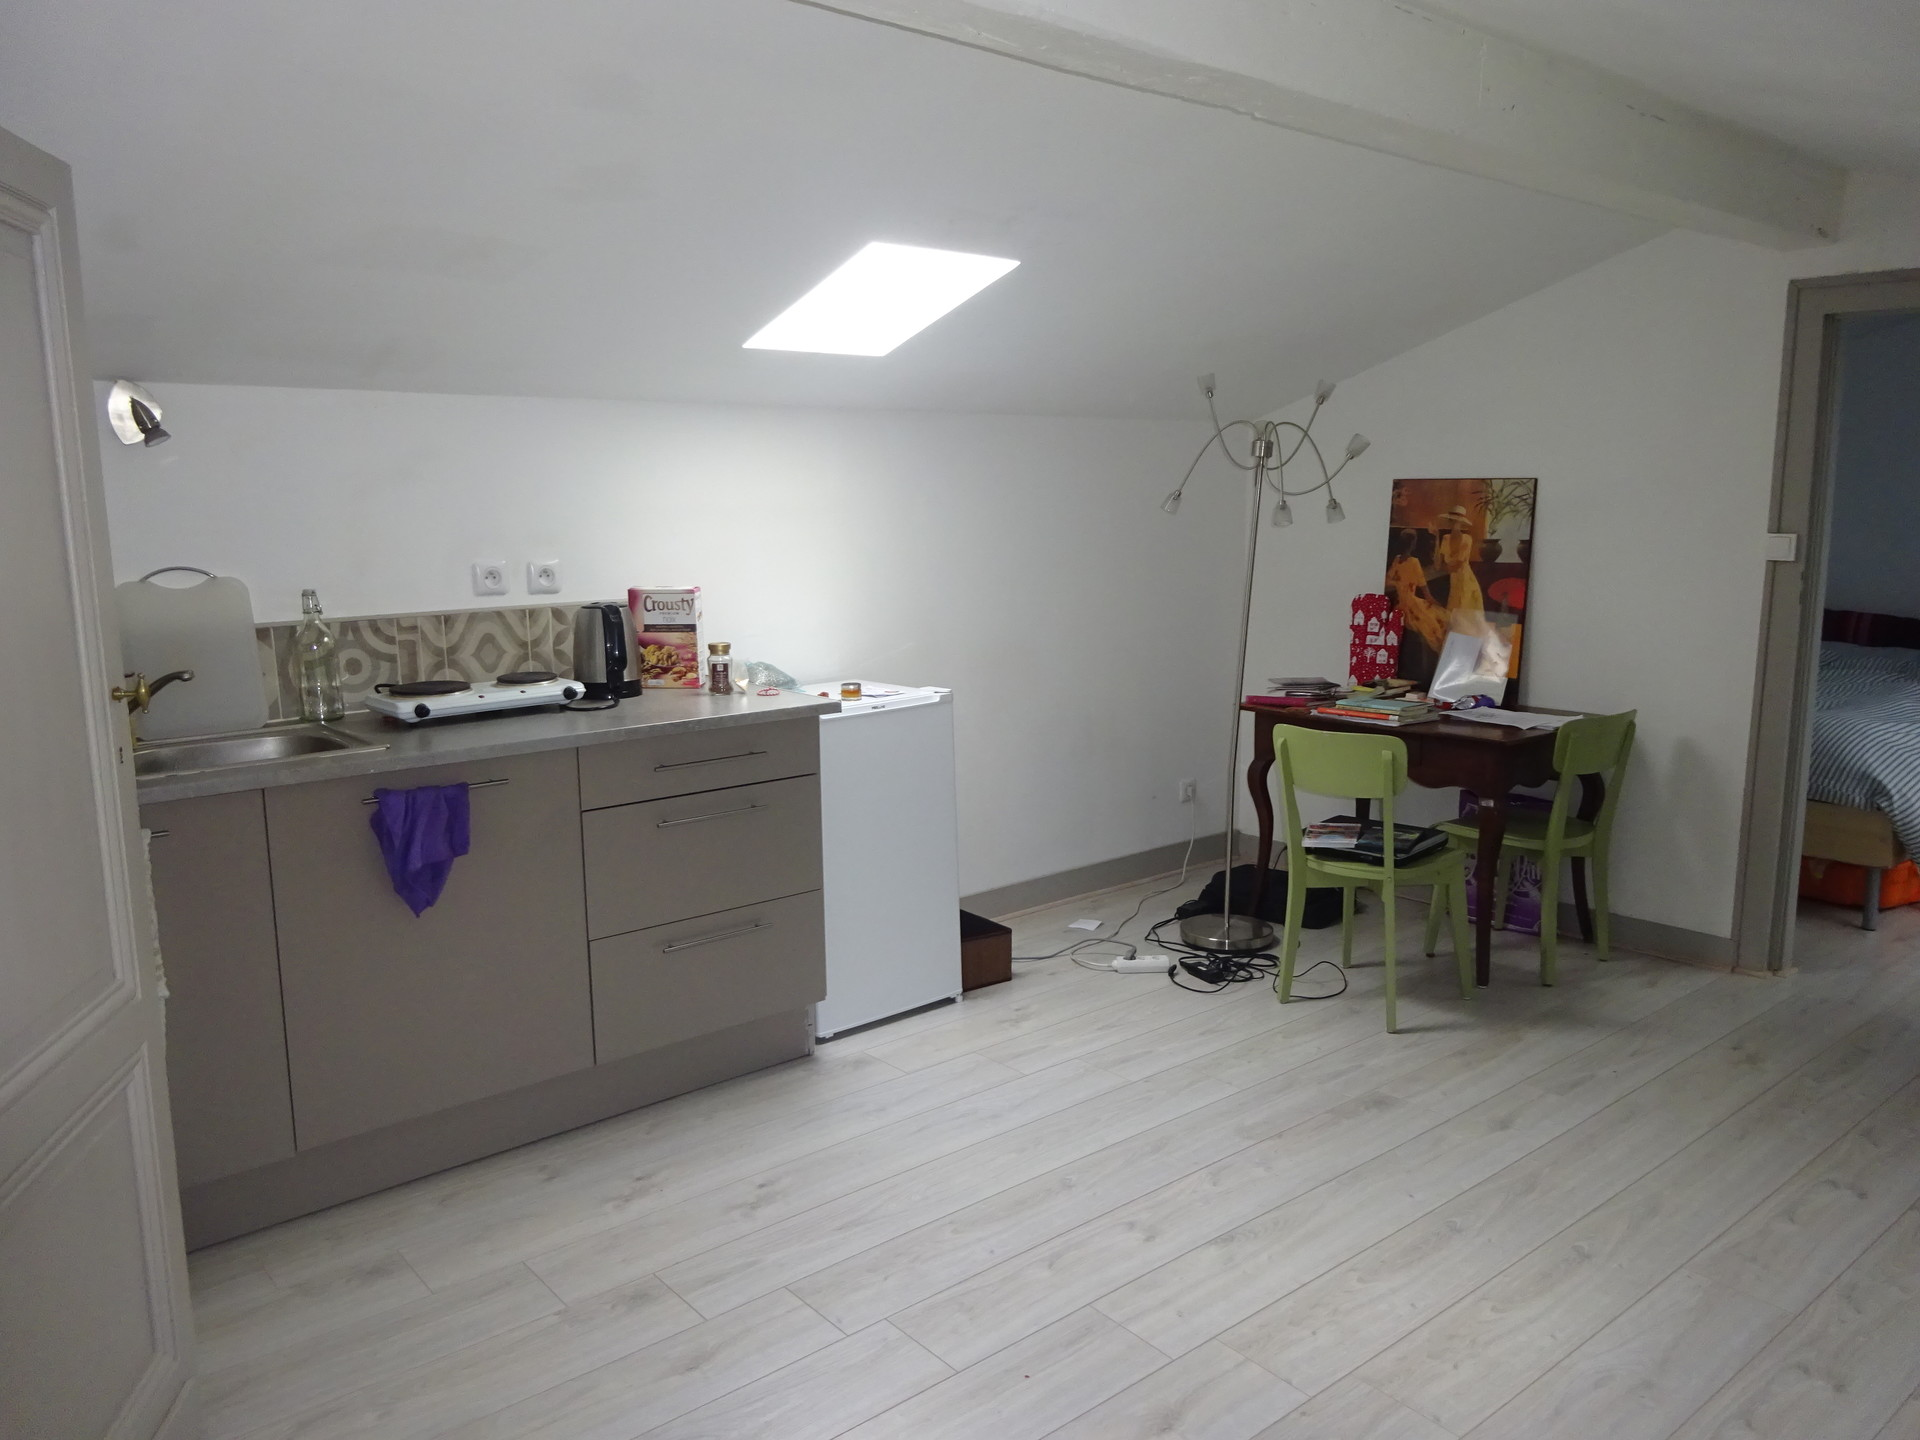 Appartement meubl de 30m2 nansouty location for Location appartement bordeaux pellegrin t2